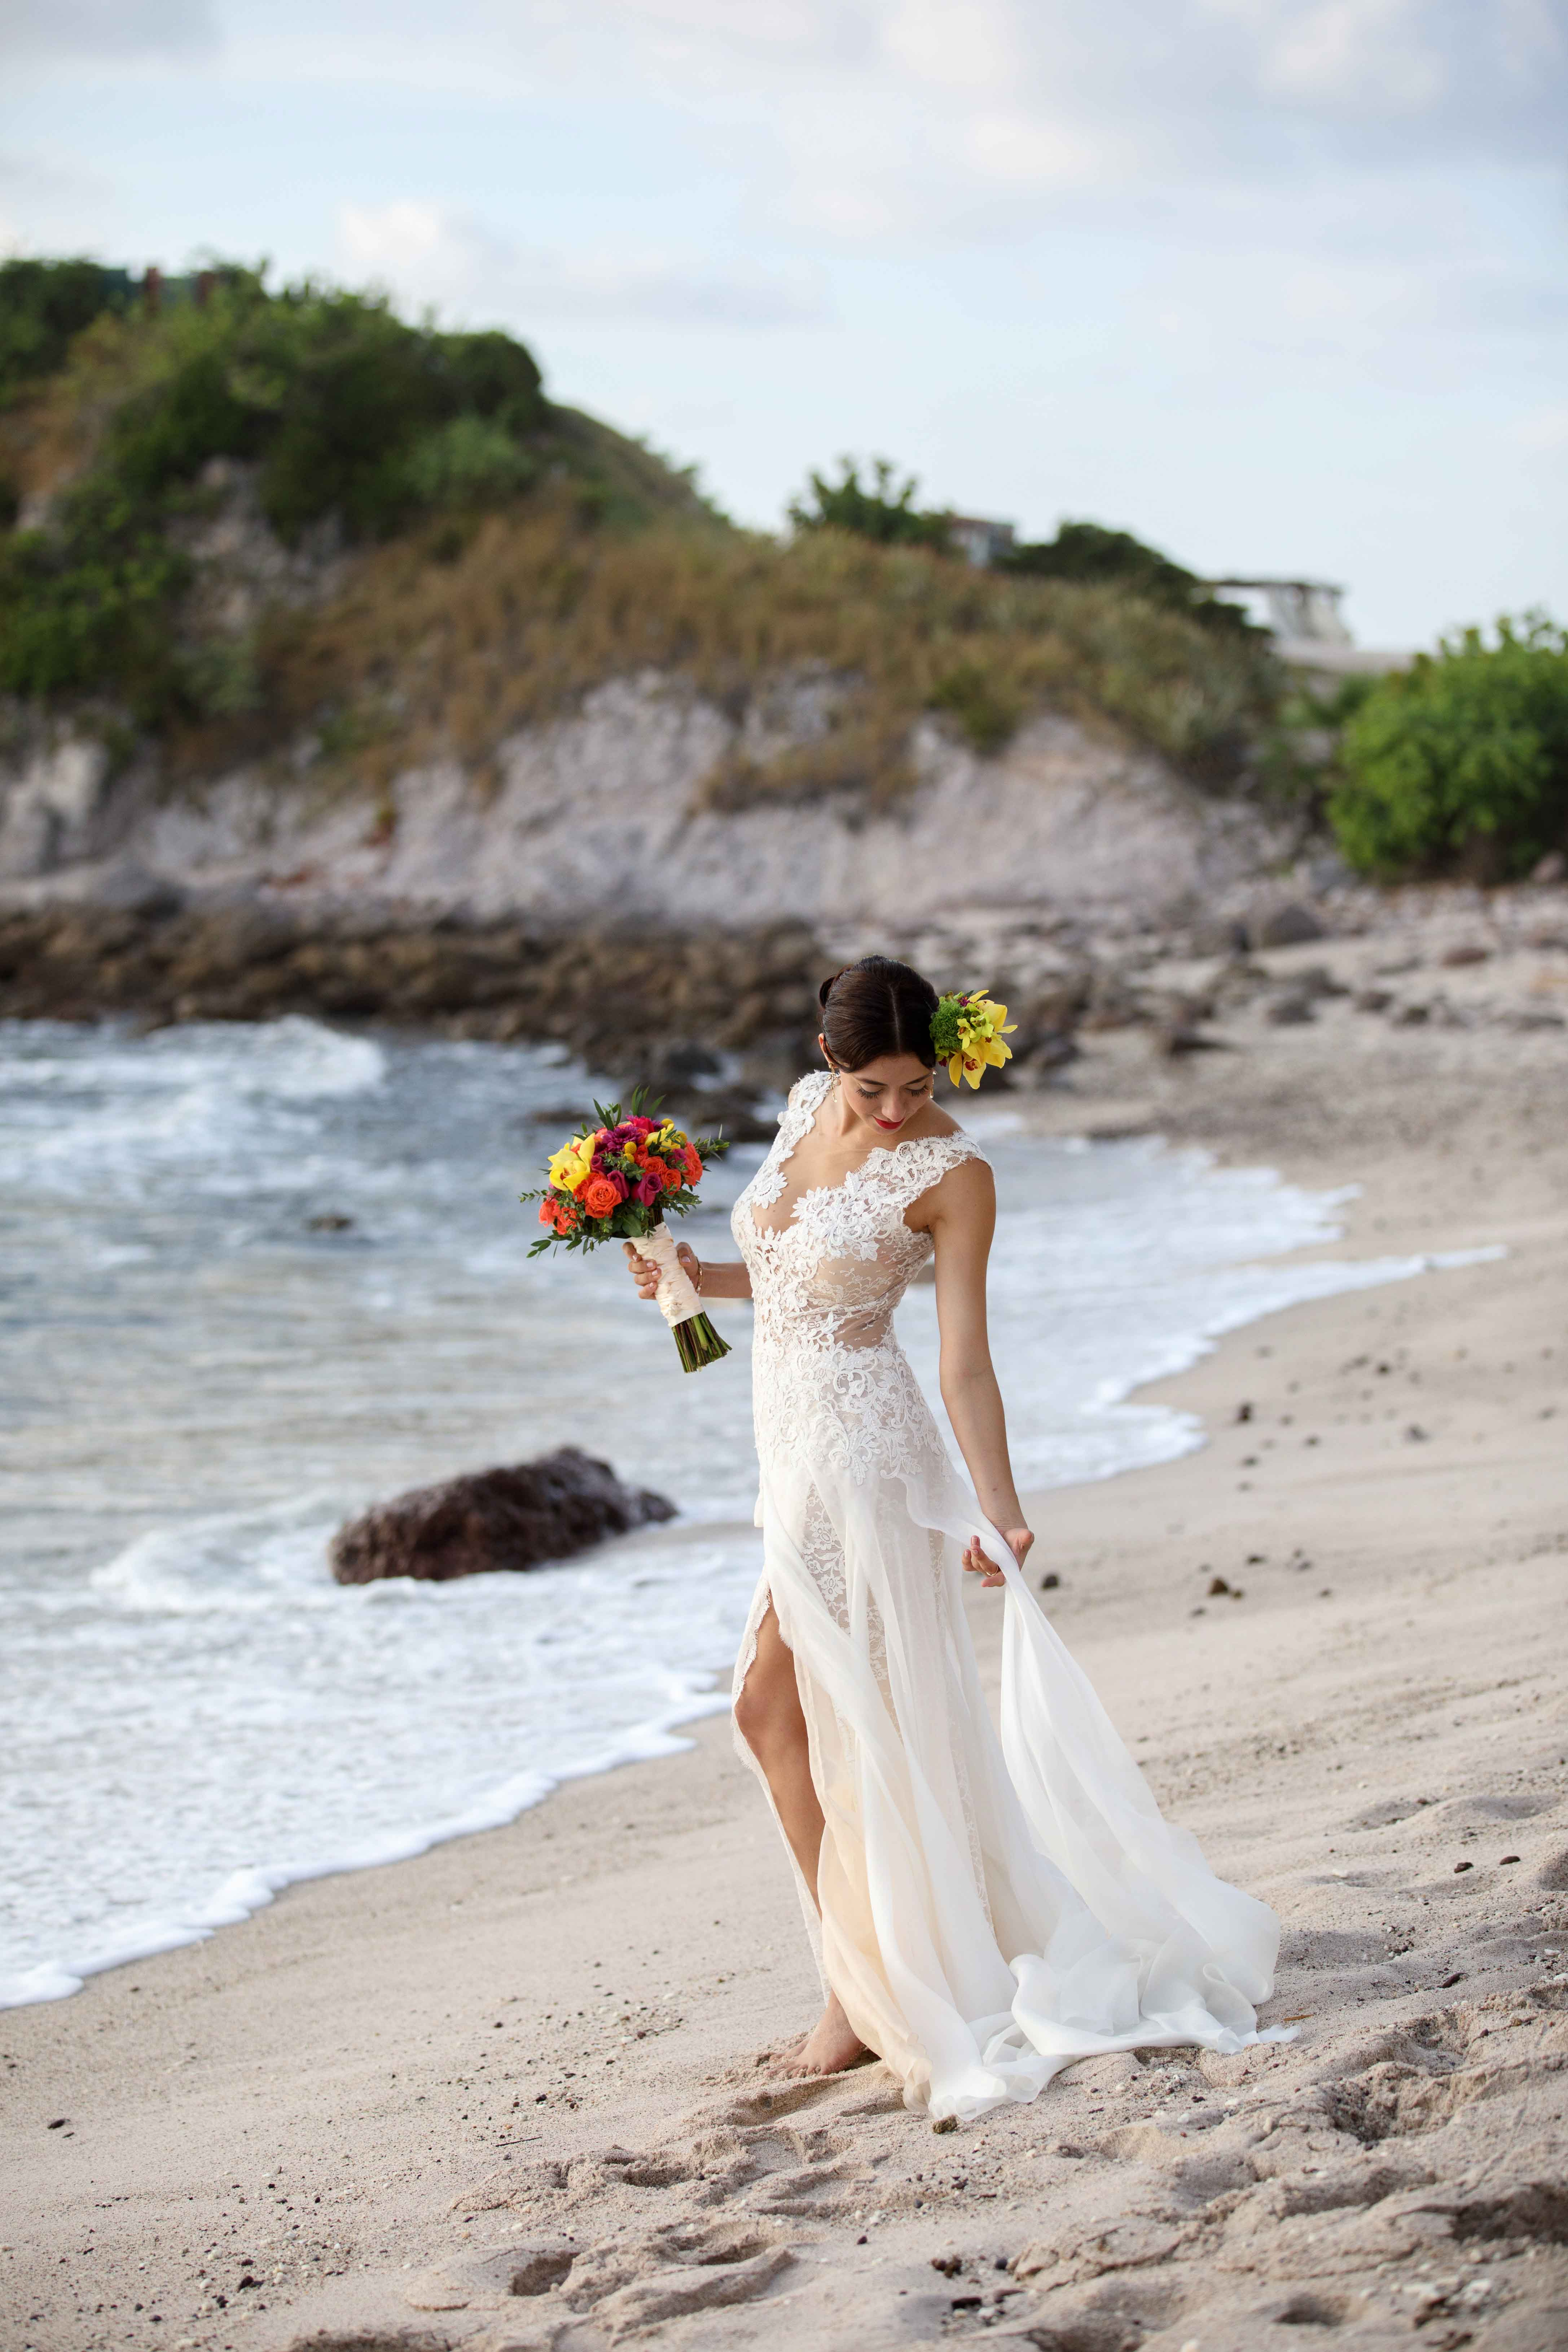 Bride on beach in mexico ines di santo wedding dress bright flowers mexican flowers in hair